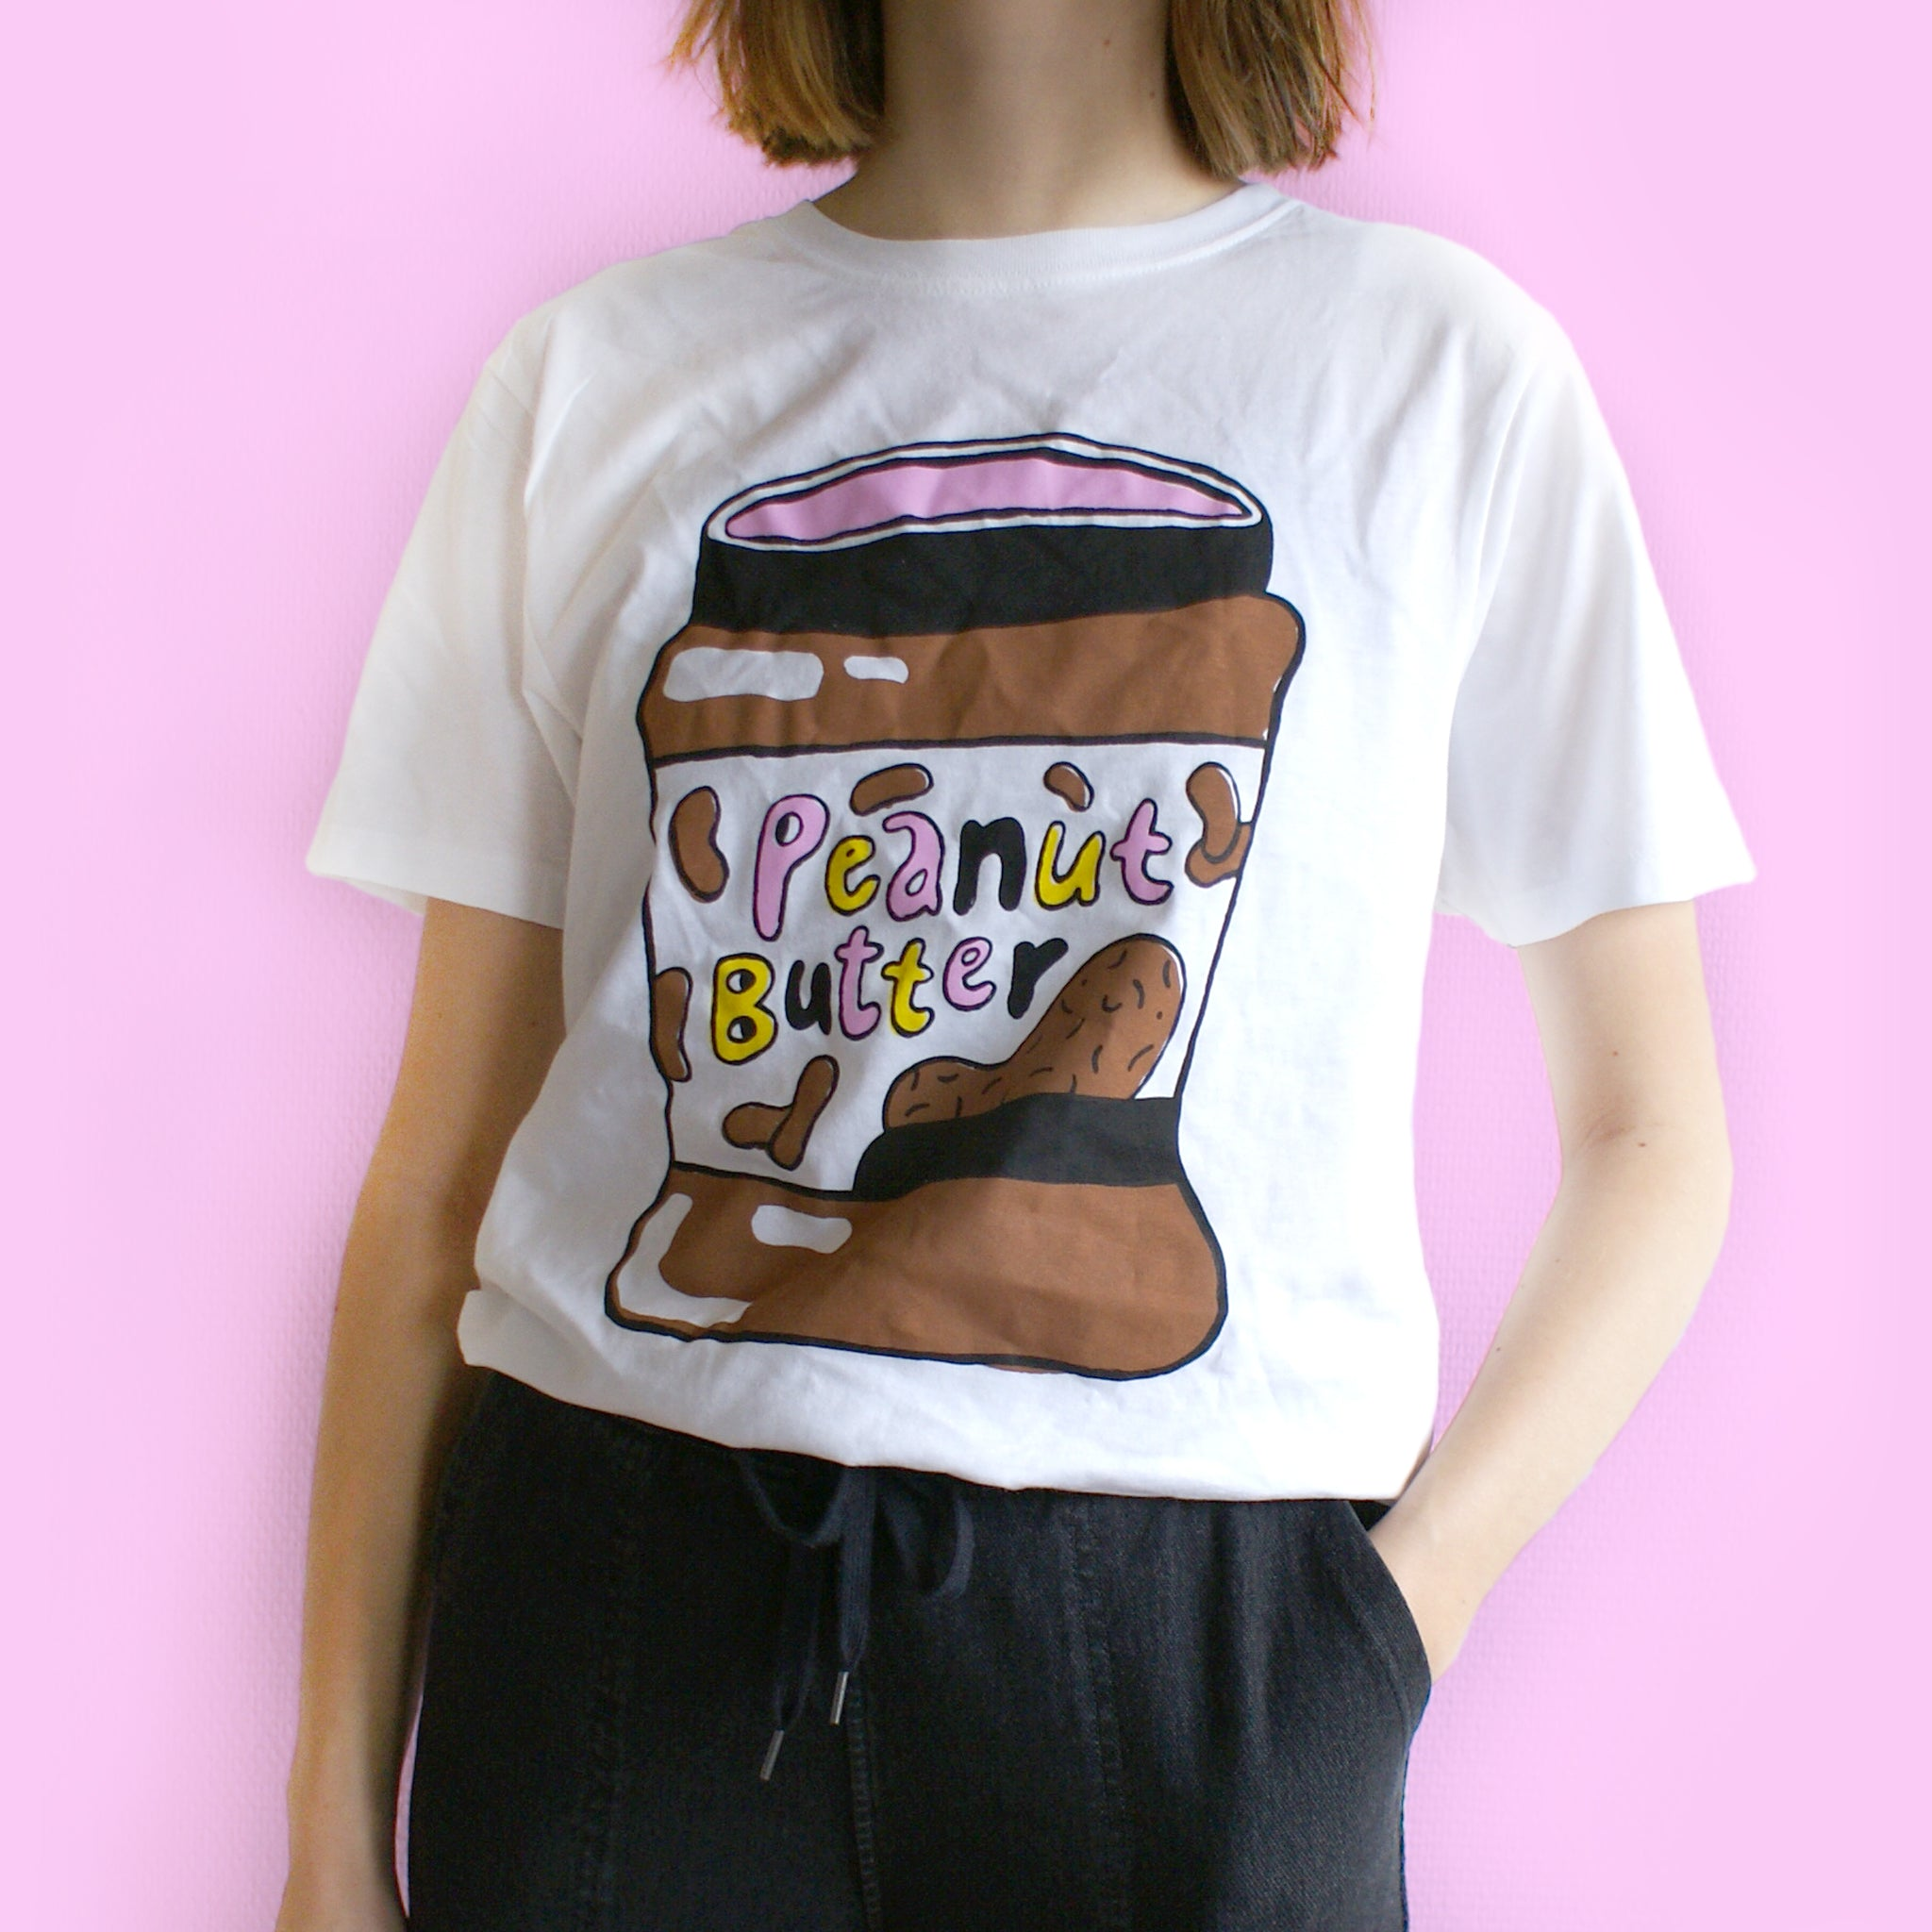 Hand Printed Peanut Butter Tee (NO JELLY) Size XL